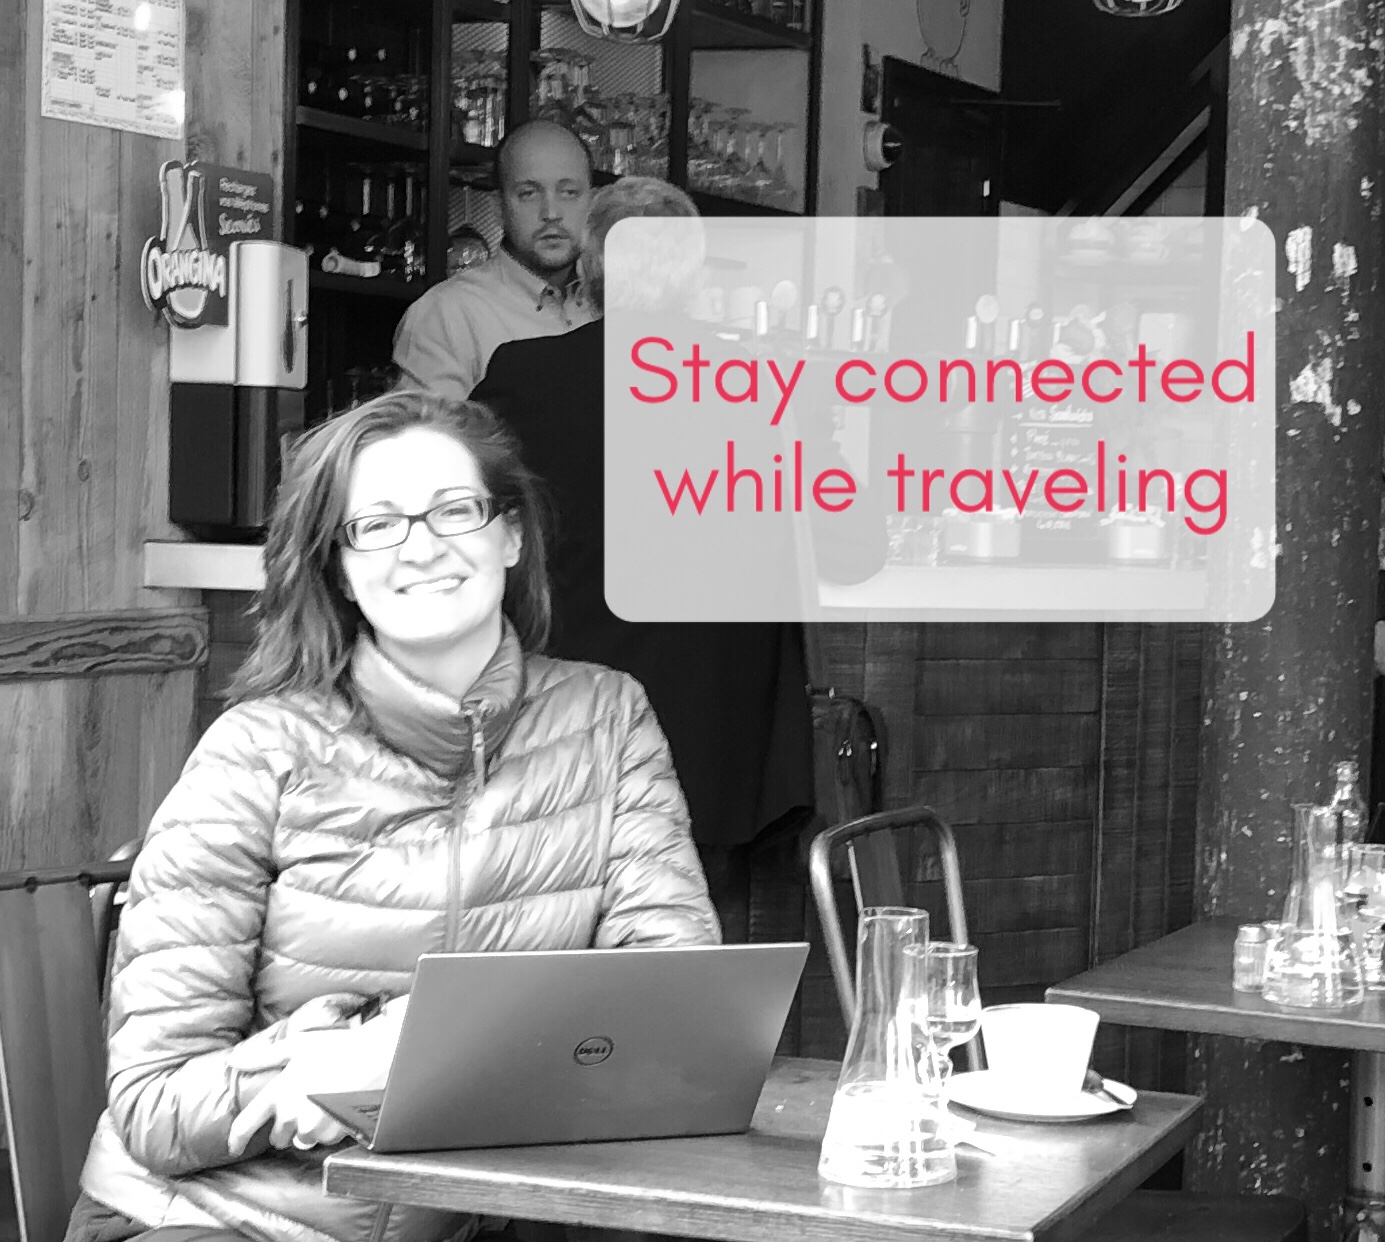 How to get data while traveling abroad